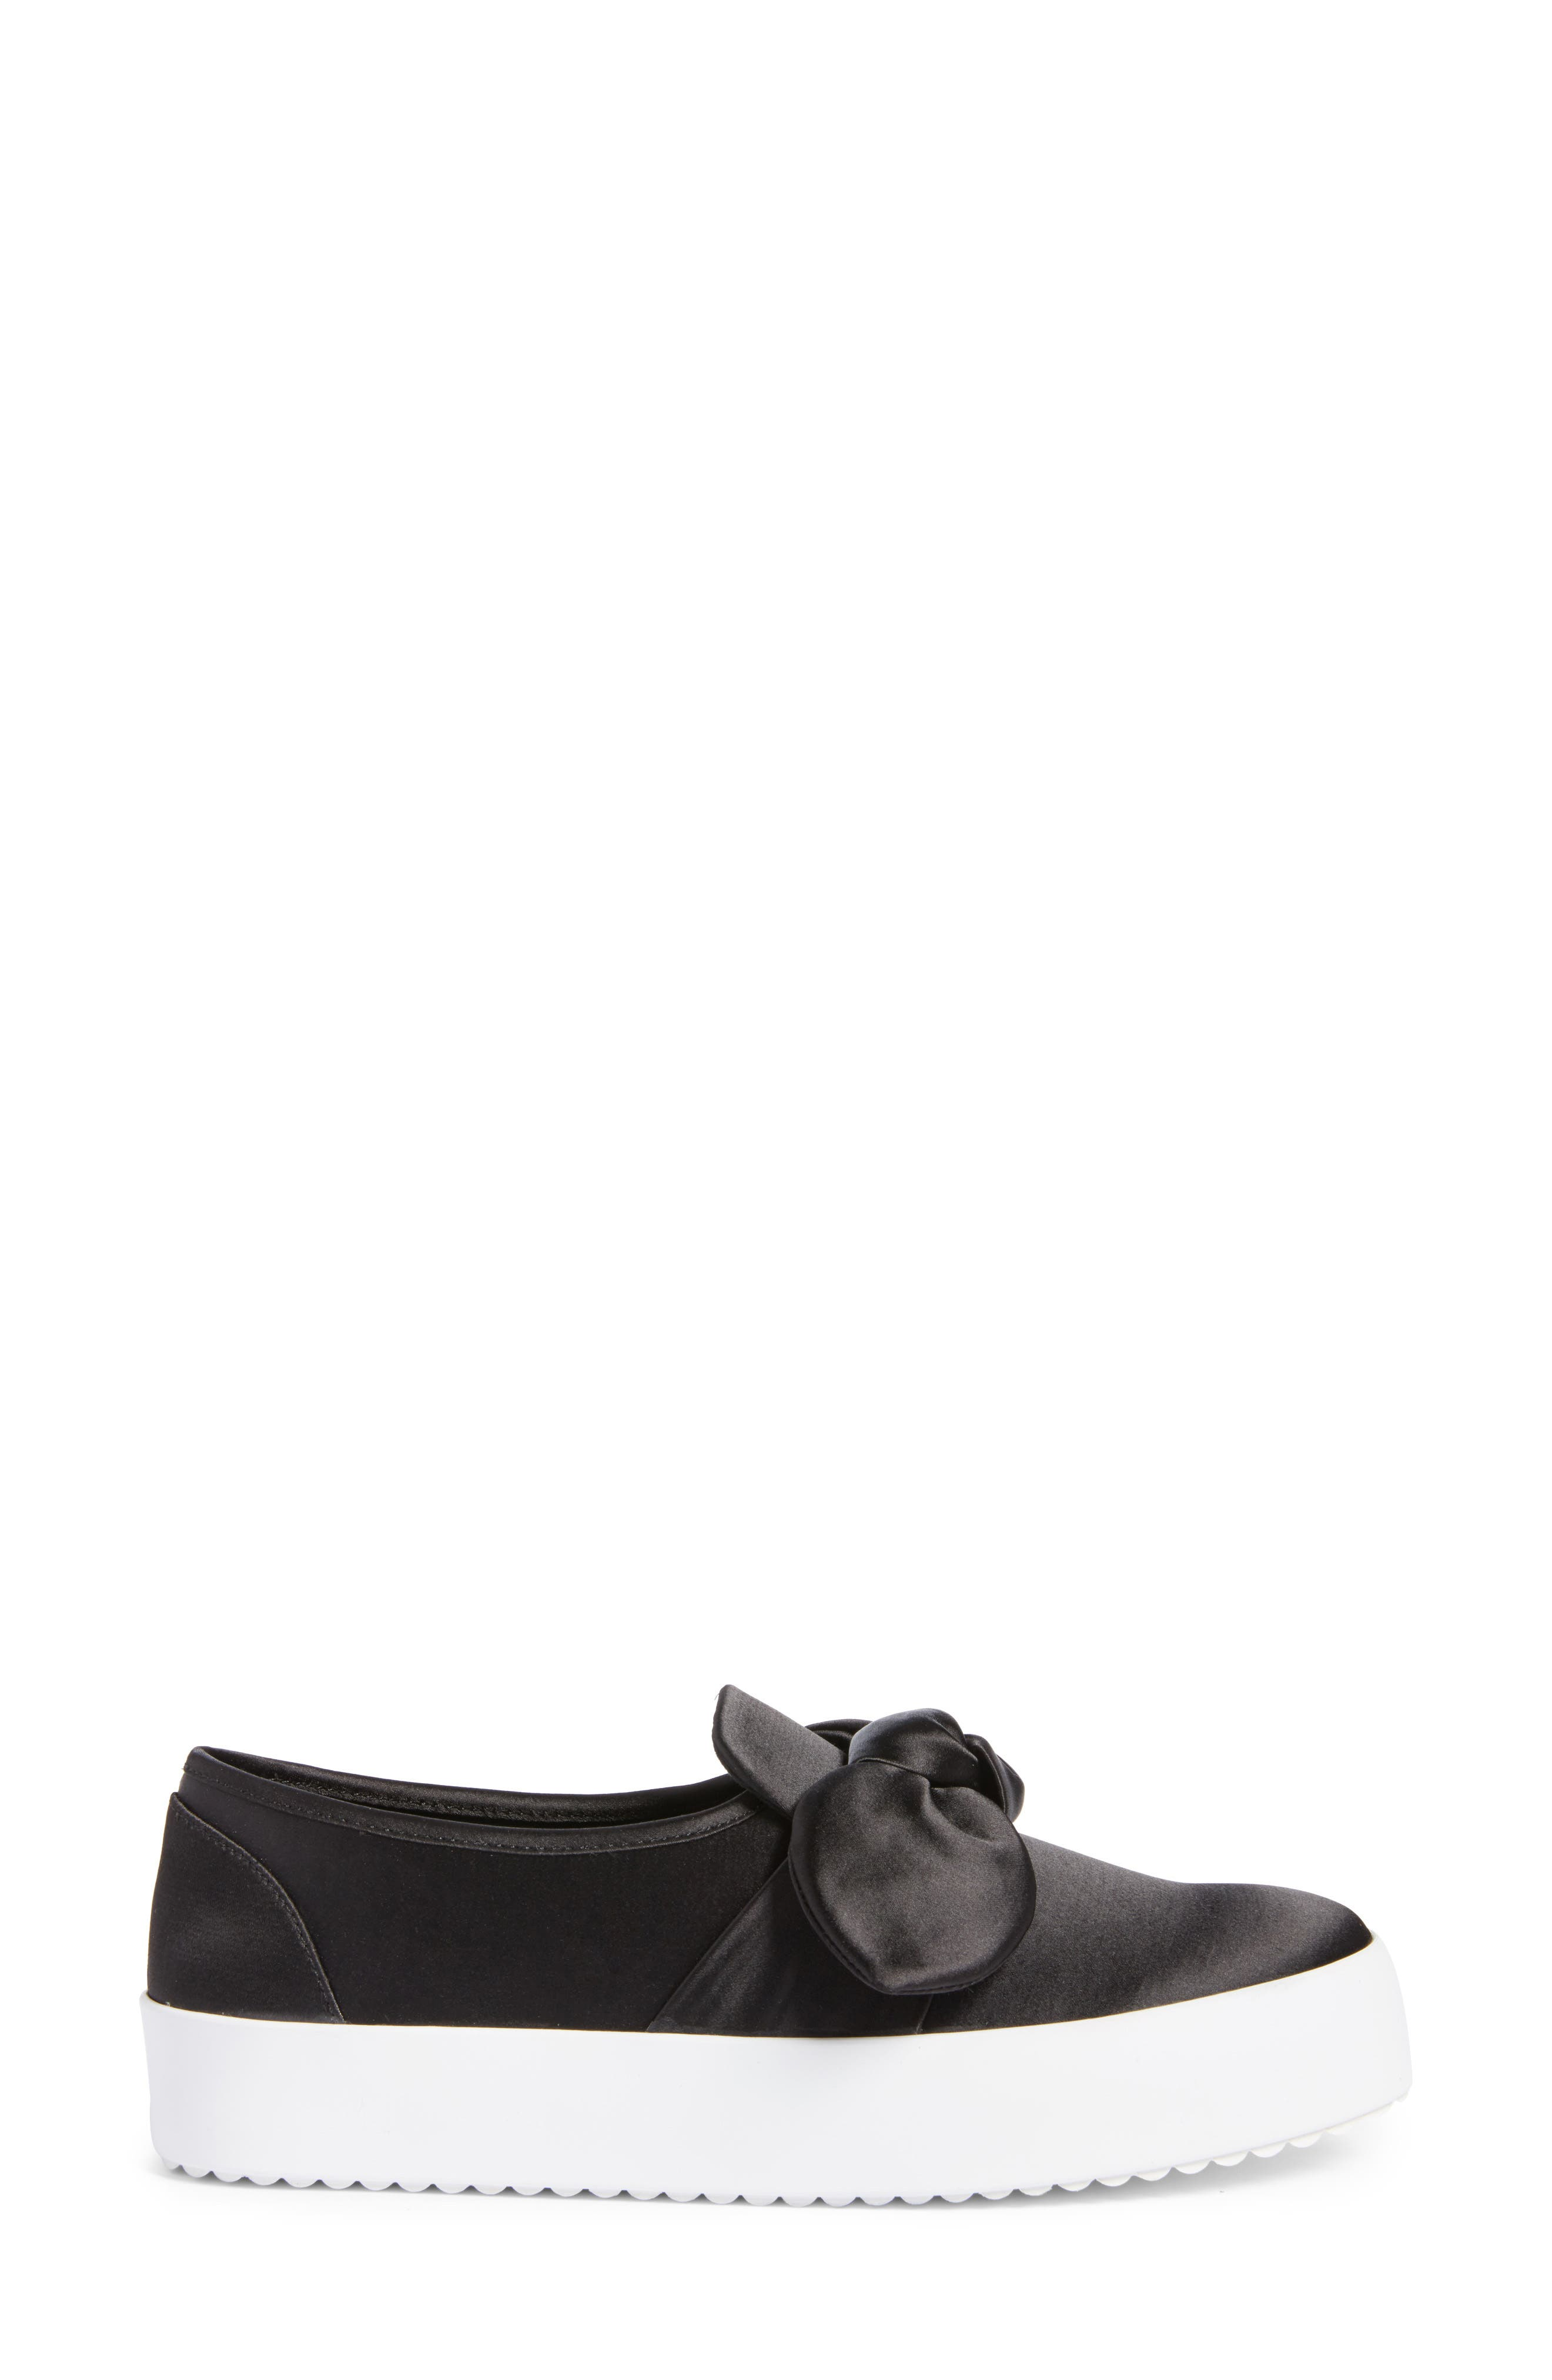 Stacey Bow Platform Sneaker,                             Alternate thumbnail 3, color,                             002